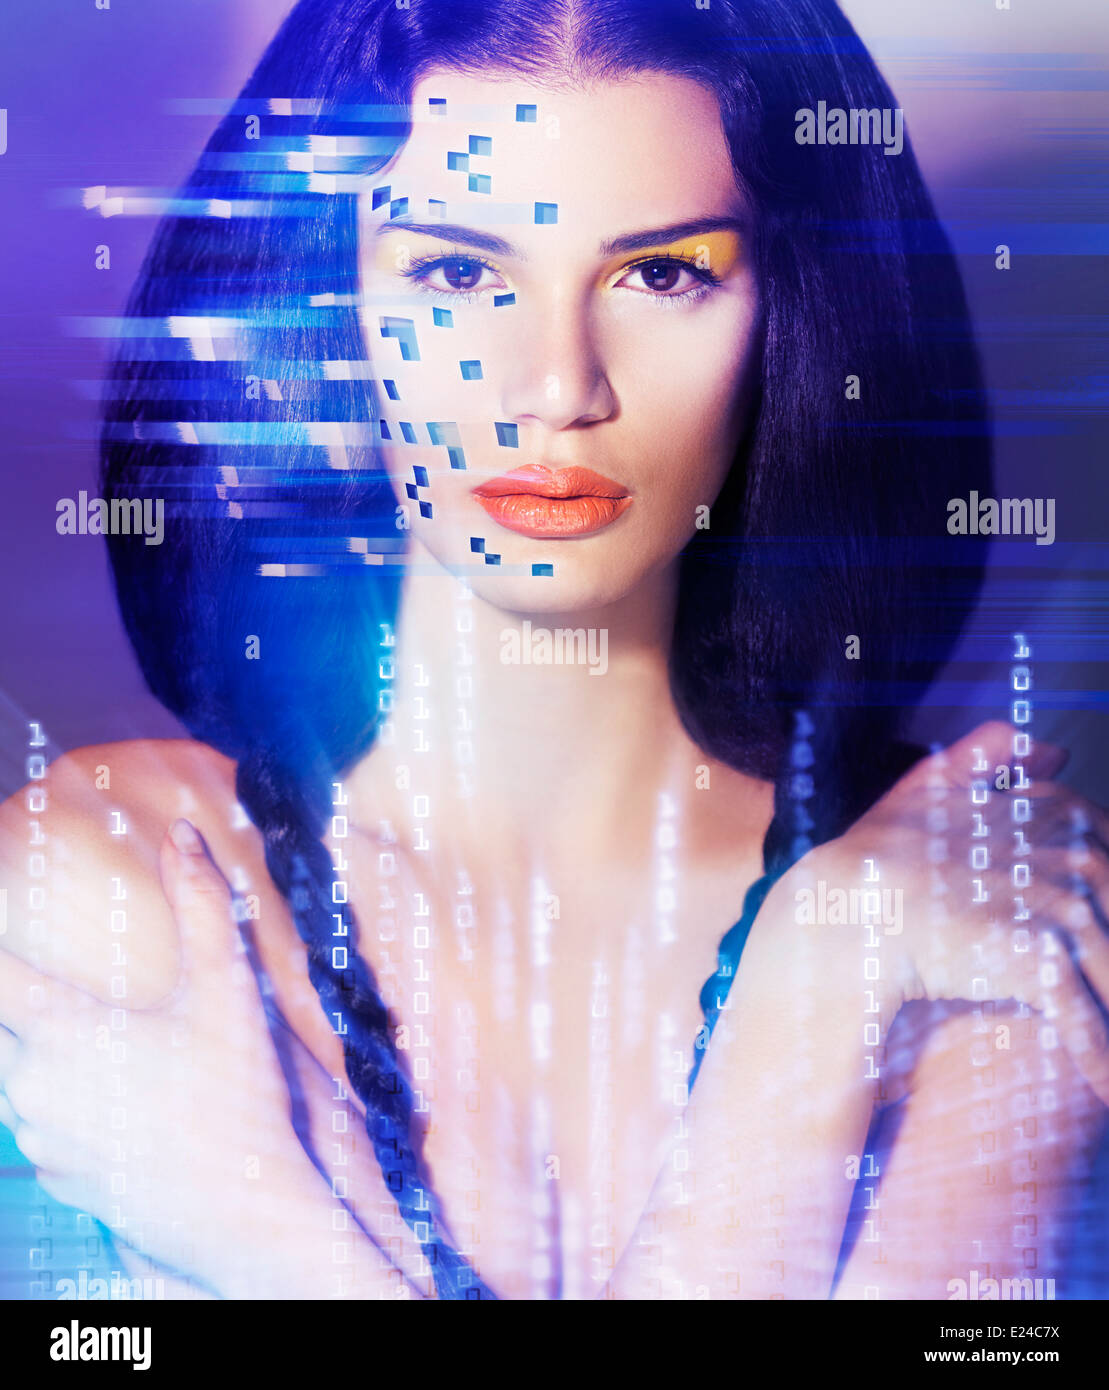 Portrait of a young beautiful woman face in digital virtual reality world. Artistic concept. - Stock Image